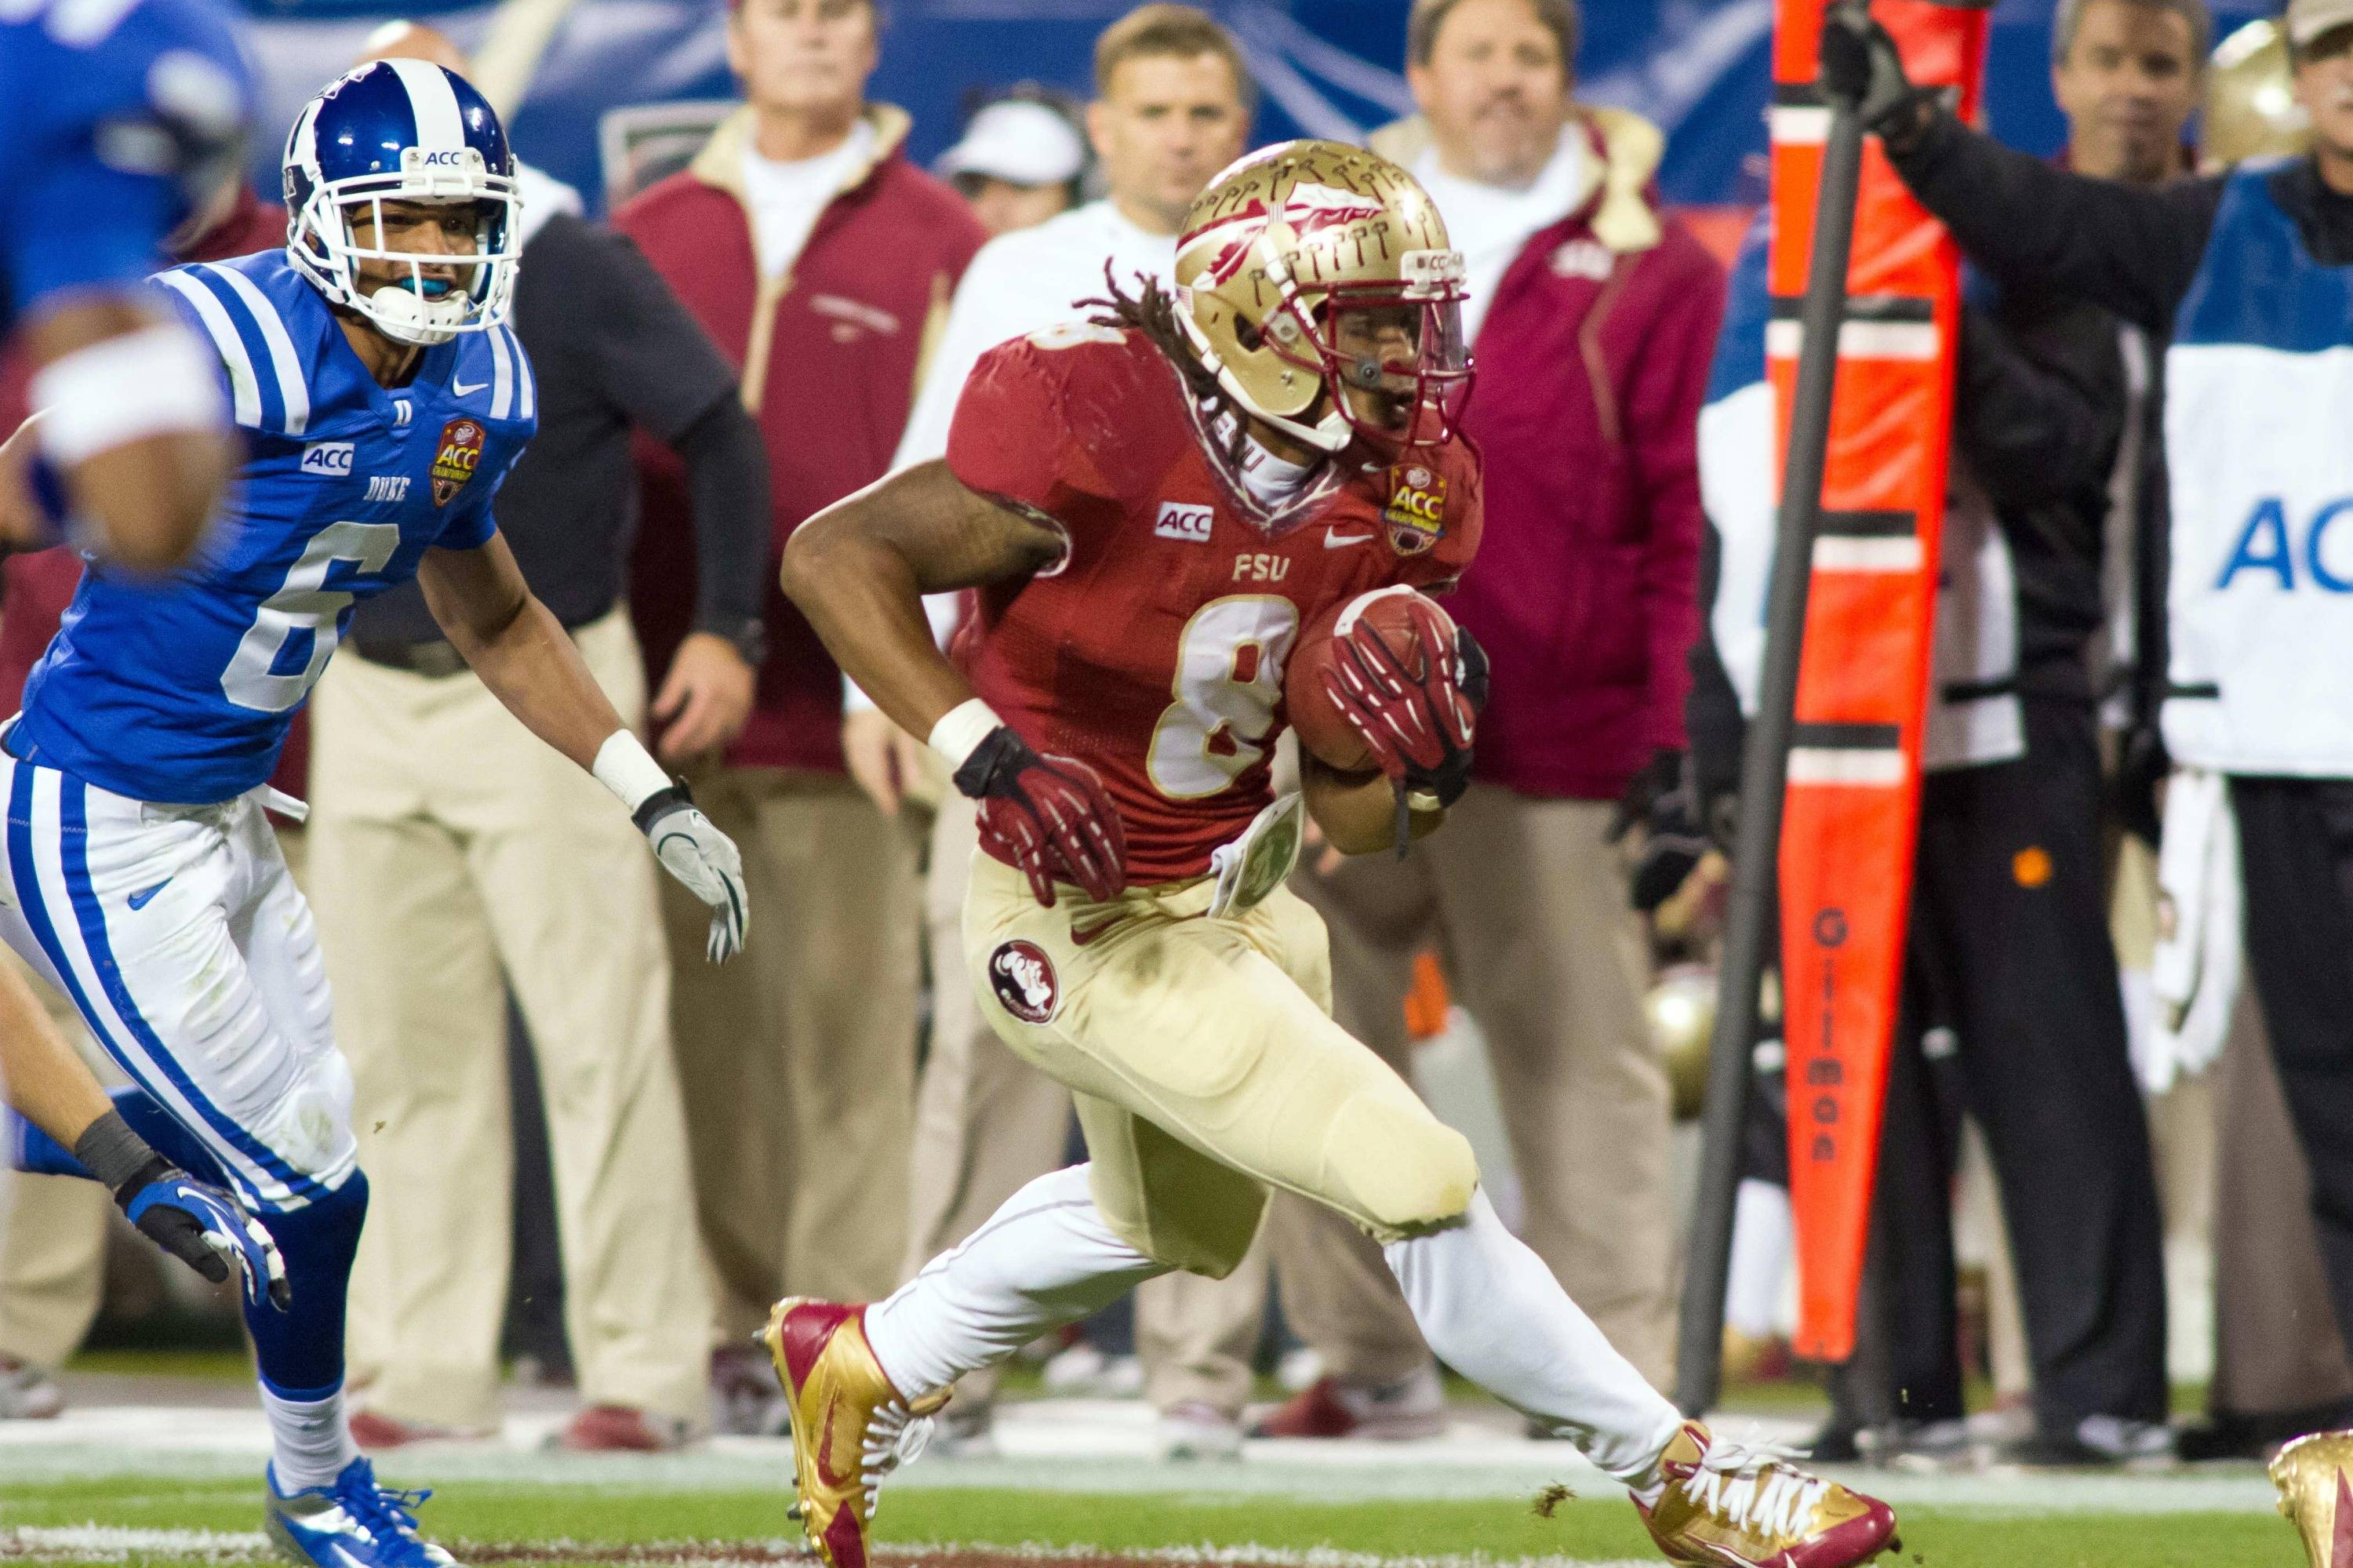 Dec 7, 2013; Charlotte, NC, USA; Florida State Seminoles running back Devonta Freeman (8) runs the ball during the first quarter against the Duke Blue Devils at Bank of America Stadium. Mandatory Credit: Jeremy Brevard-USA TODAY Sports